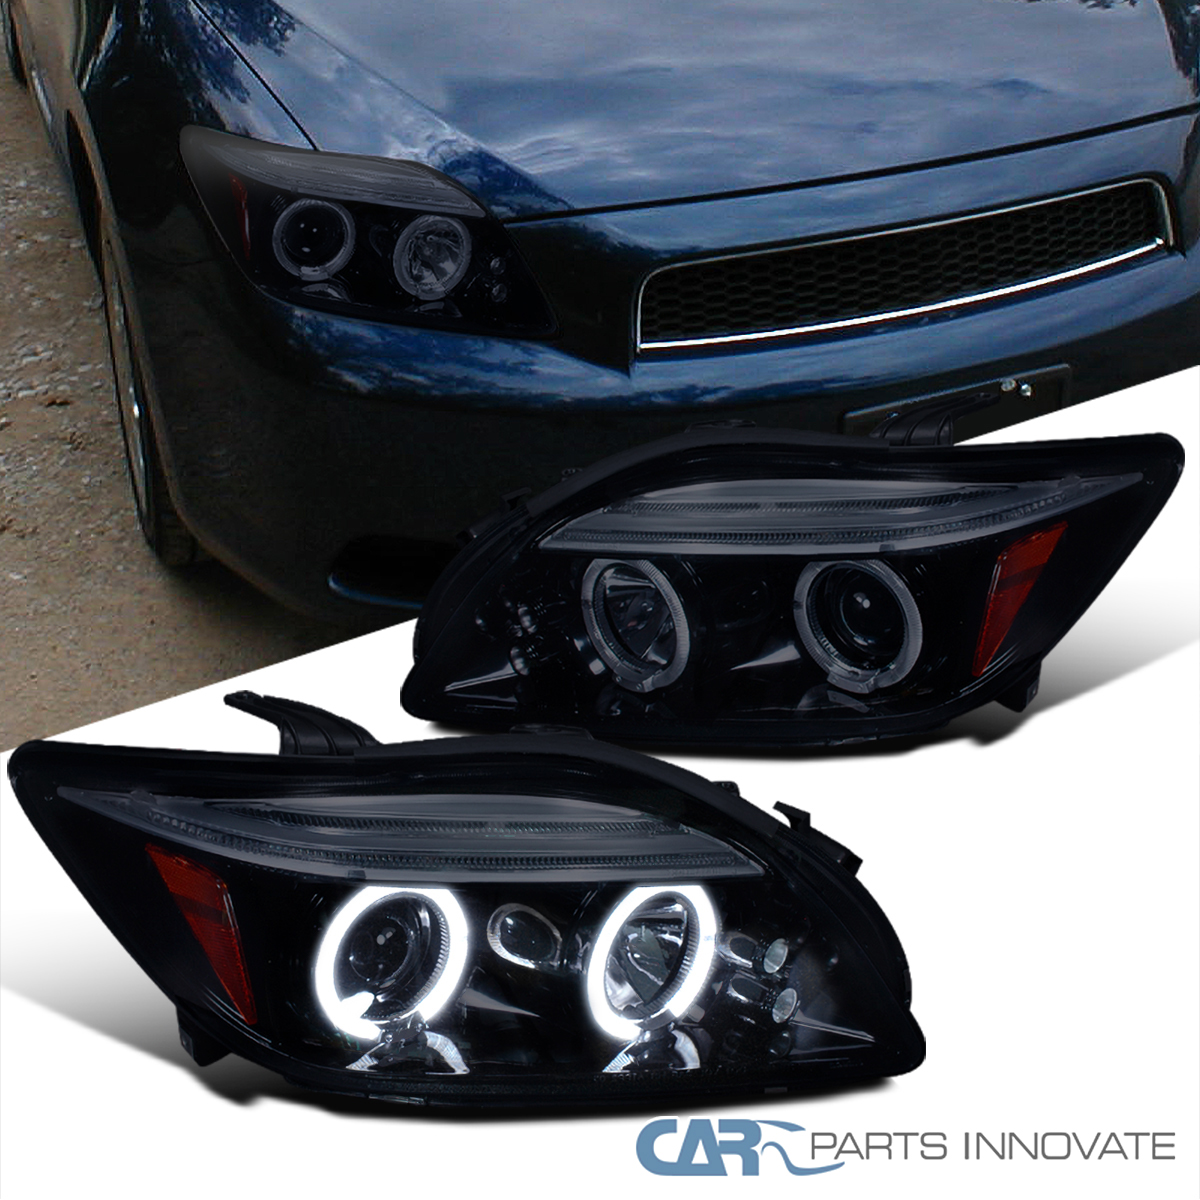 Scion Tc Headlights >> Details About New Glossy Black 05 10 Scion Tc Smoke Led Dual Halo Projector Headlights Lamps